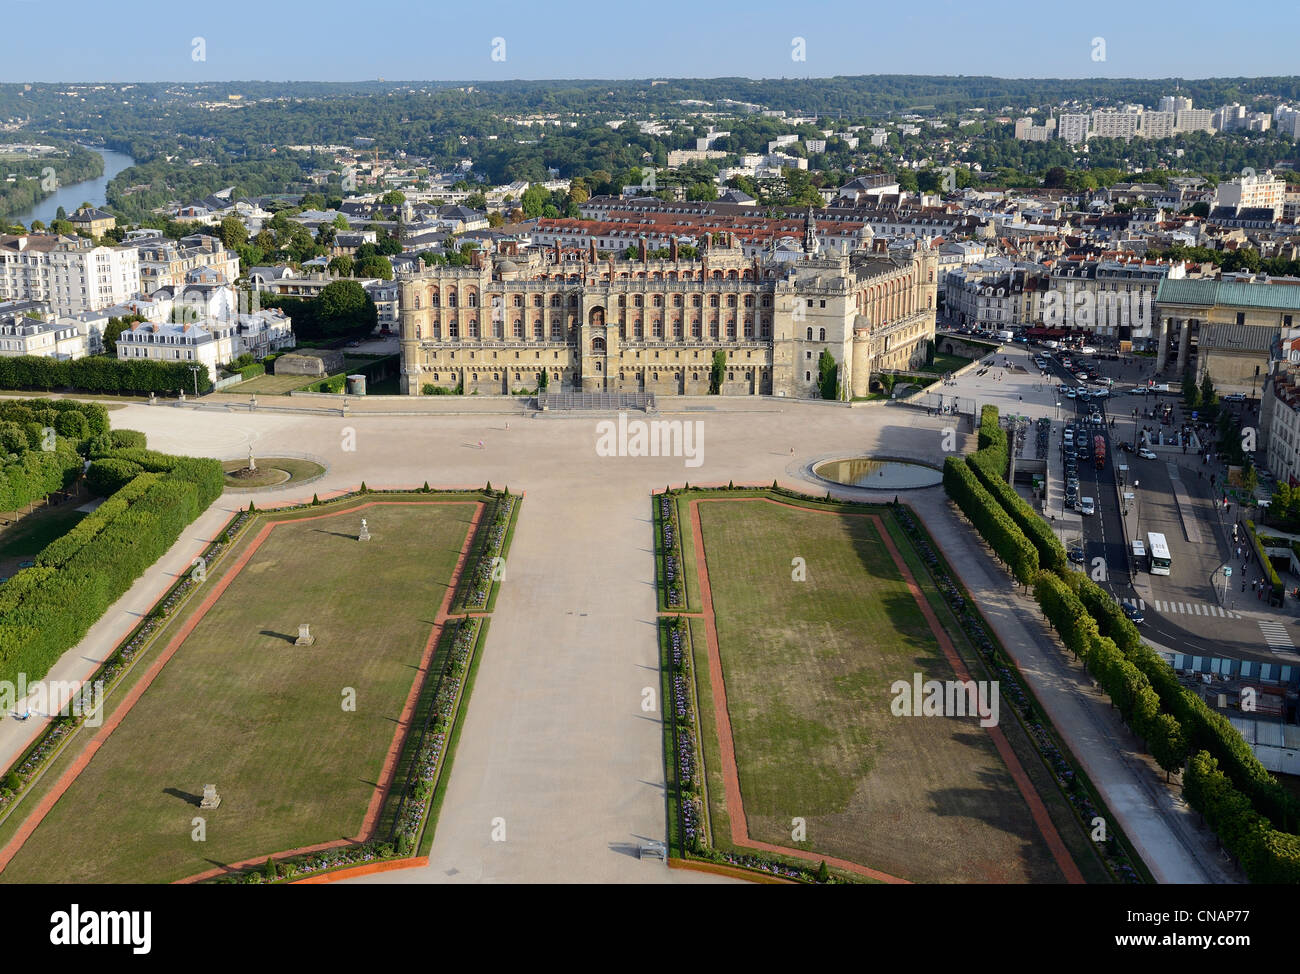 france yvelines saint germain en laye the castle headquarters of stock photo 47565483 alamy. Black Bedroom Furniture Sets. Home Design Ideas